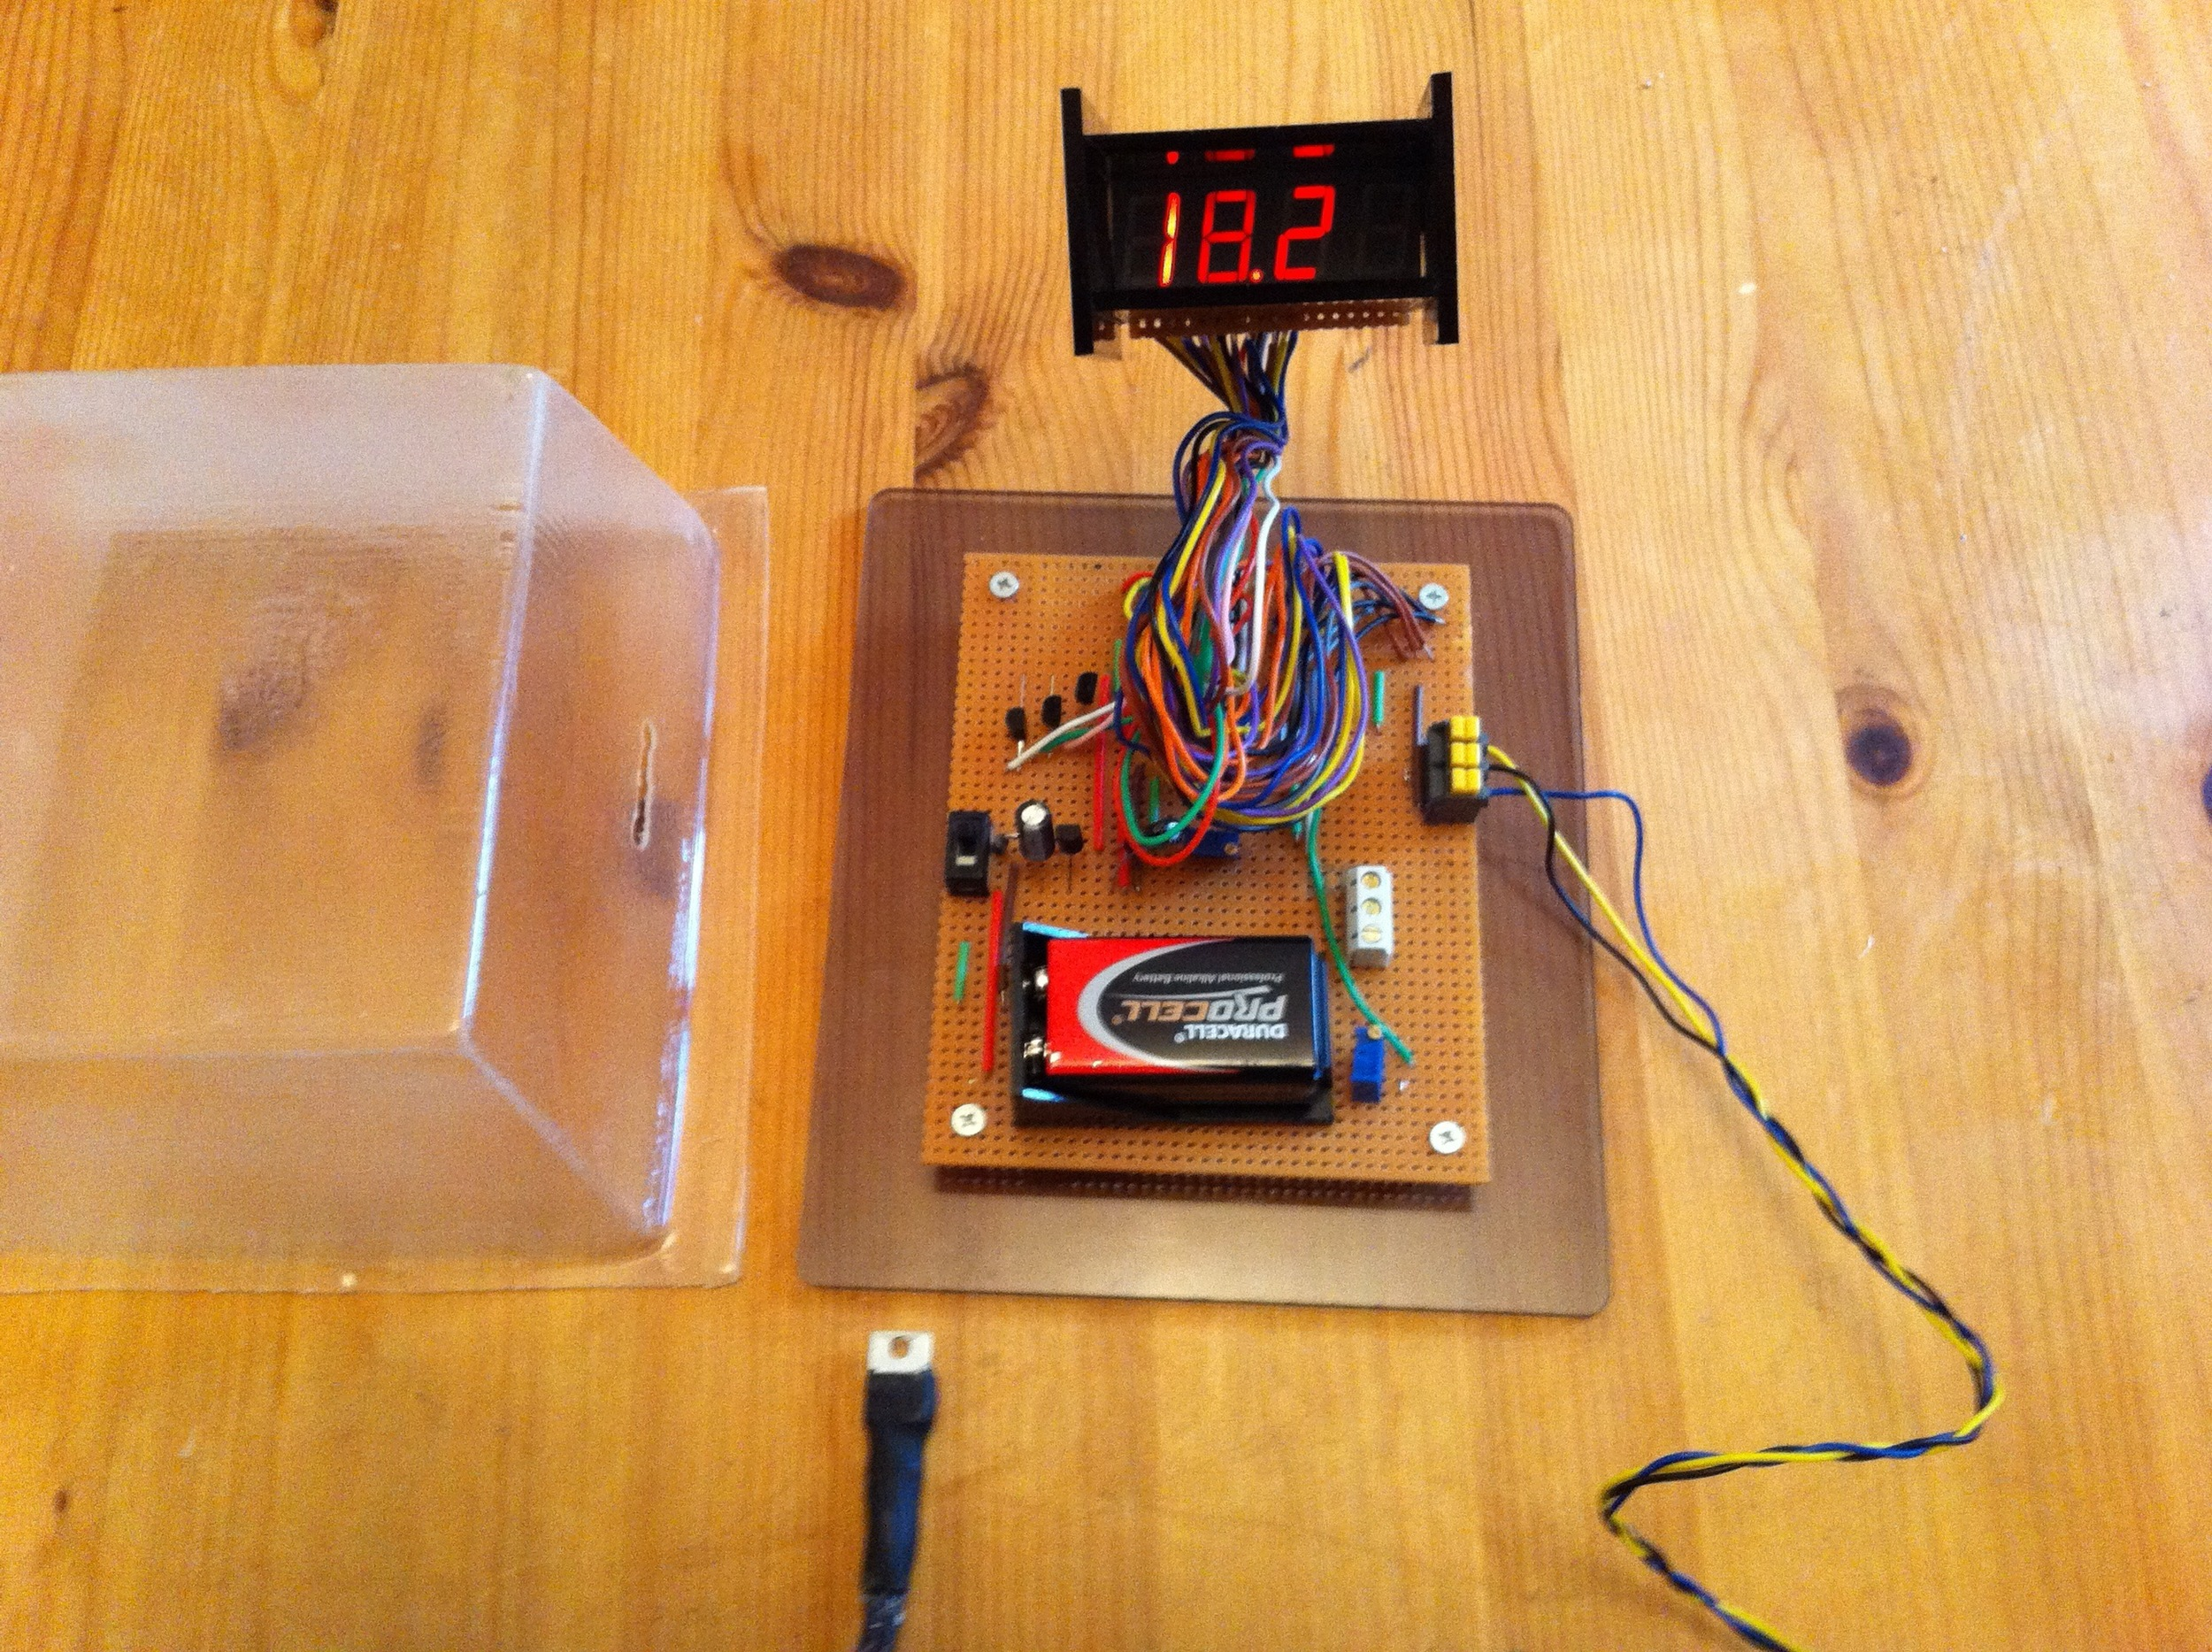 The thermometer utilsed an LM35 temperature sensor and a 7 segment display. The clear cover was vacuum molded.